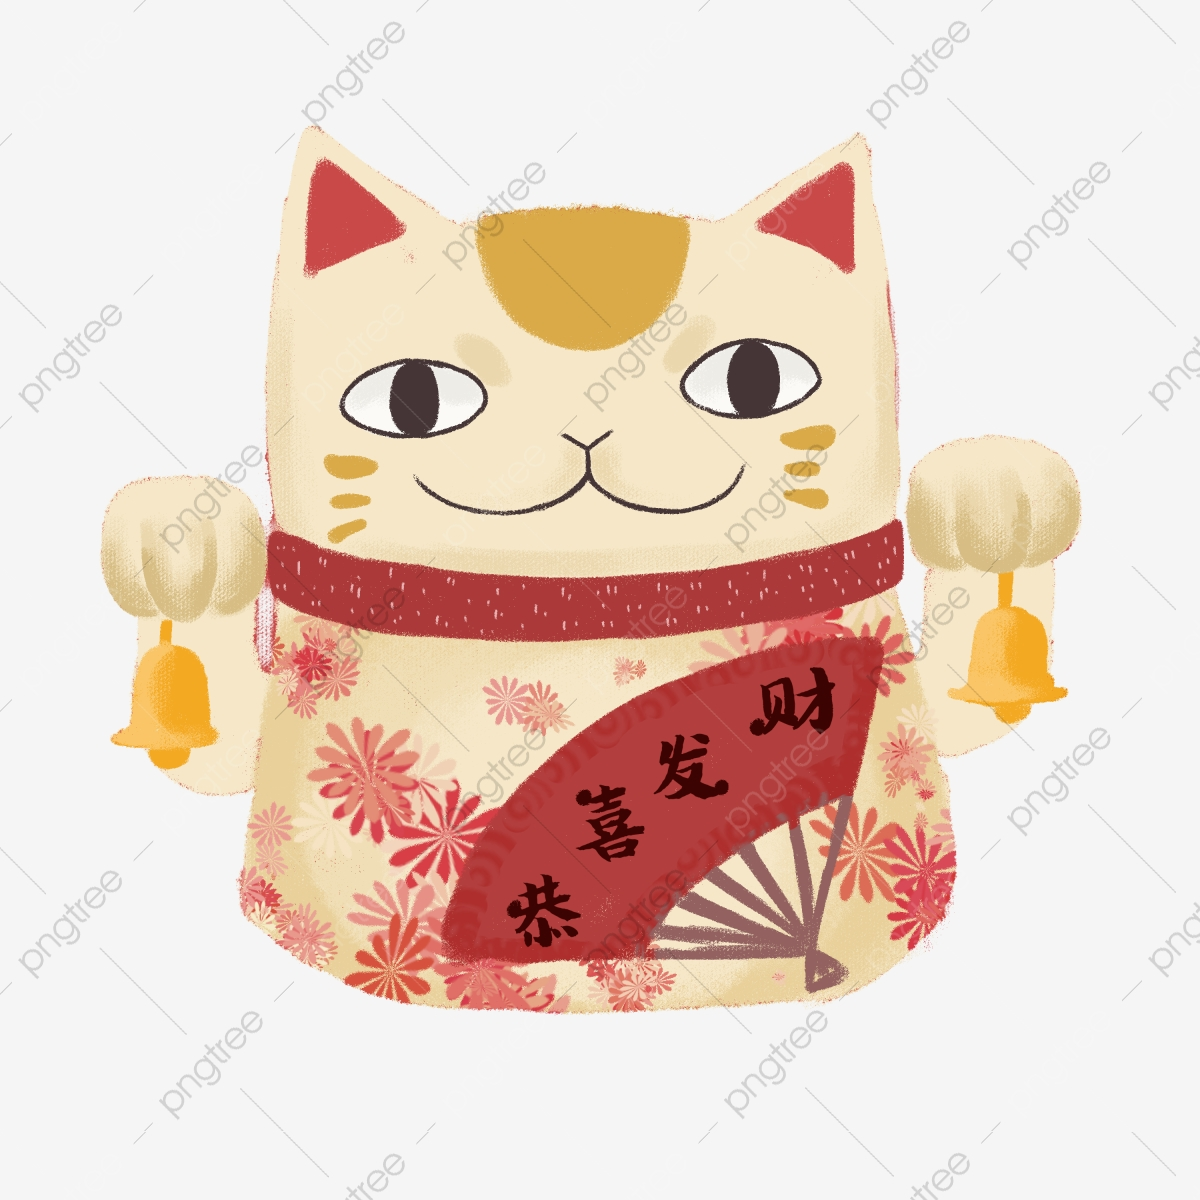 Lucky festival of new. Clipart cat spring